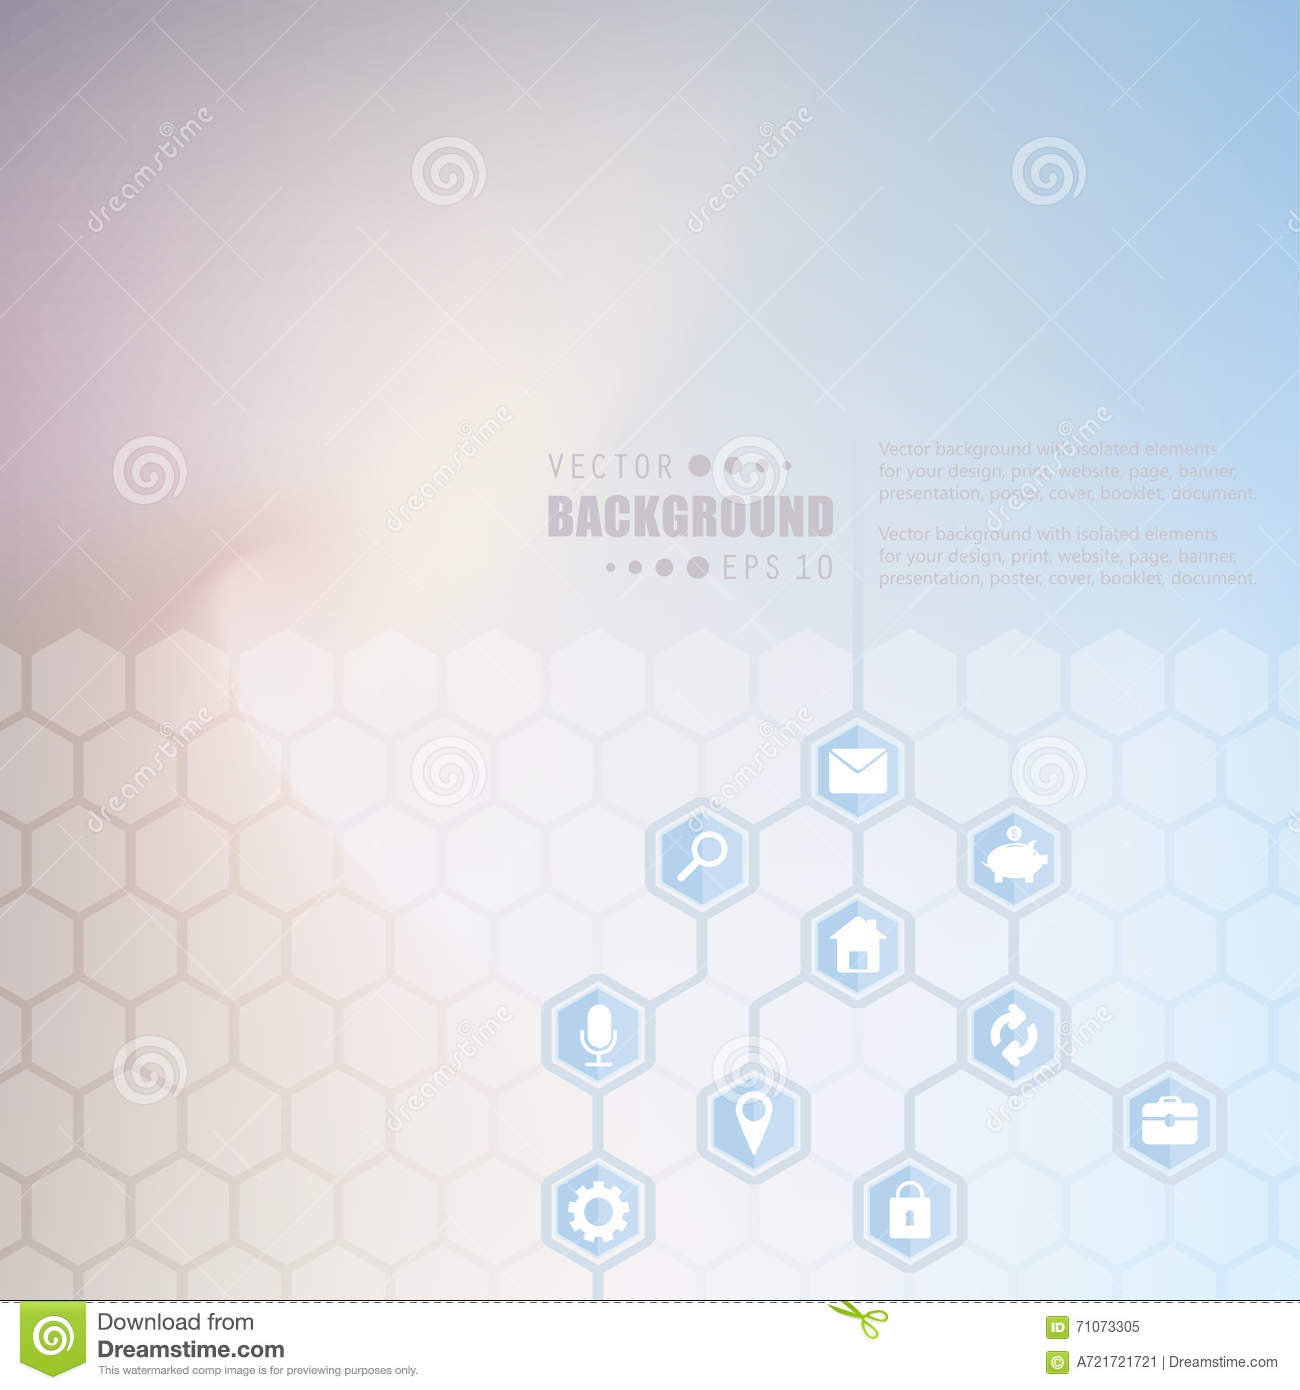 Abstract Creative Concept Vector Hexagon Network With Icon Isolated On Background For Web Mobile App